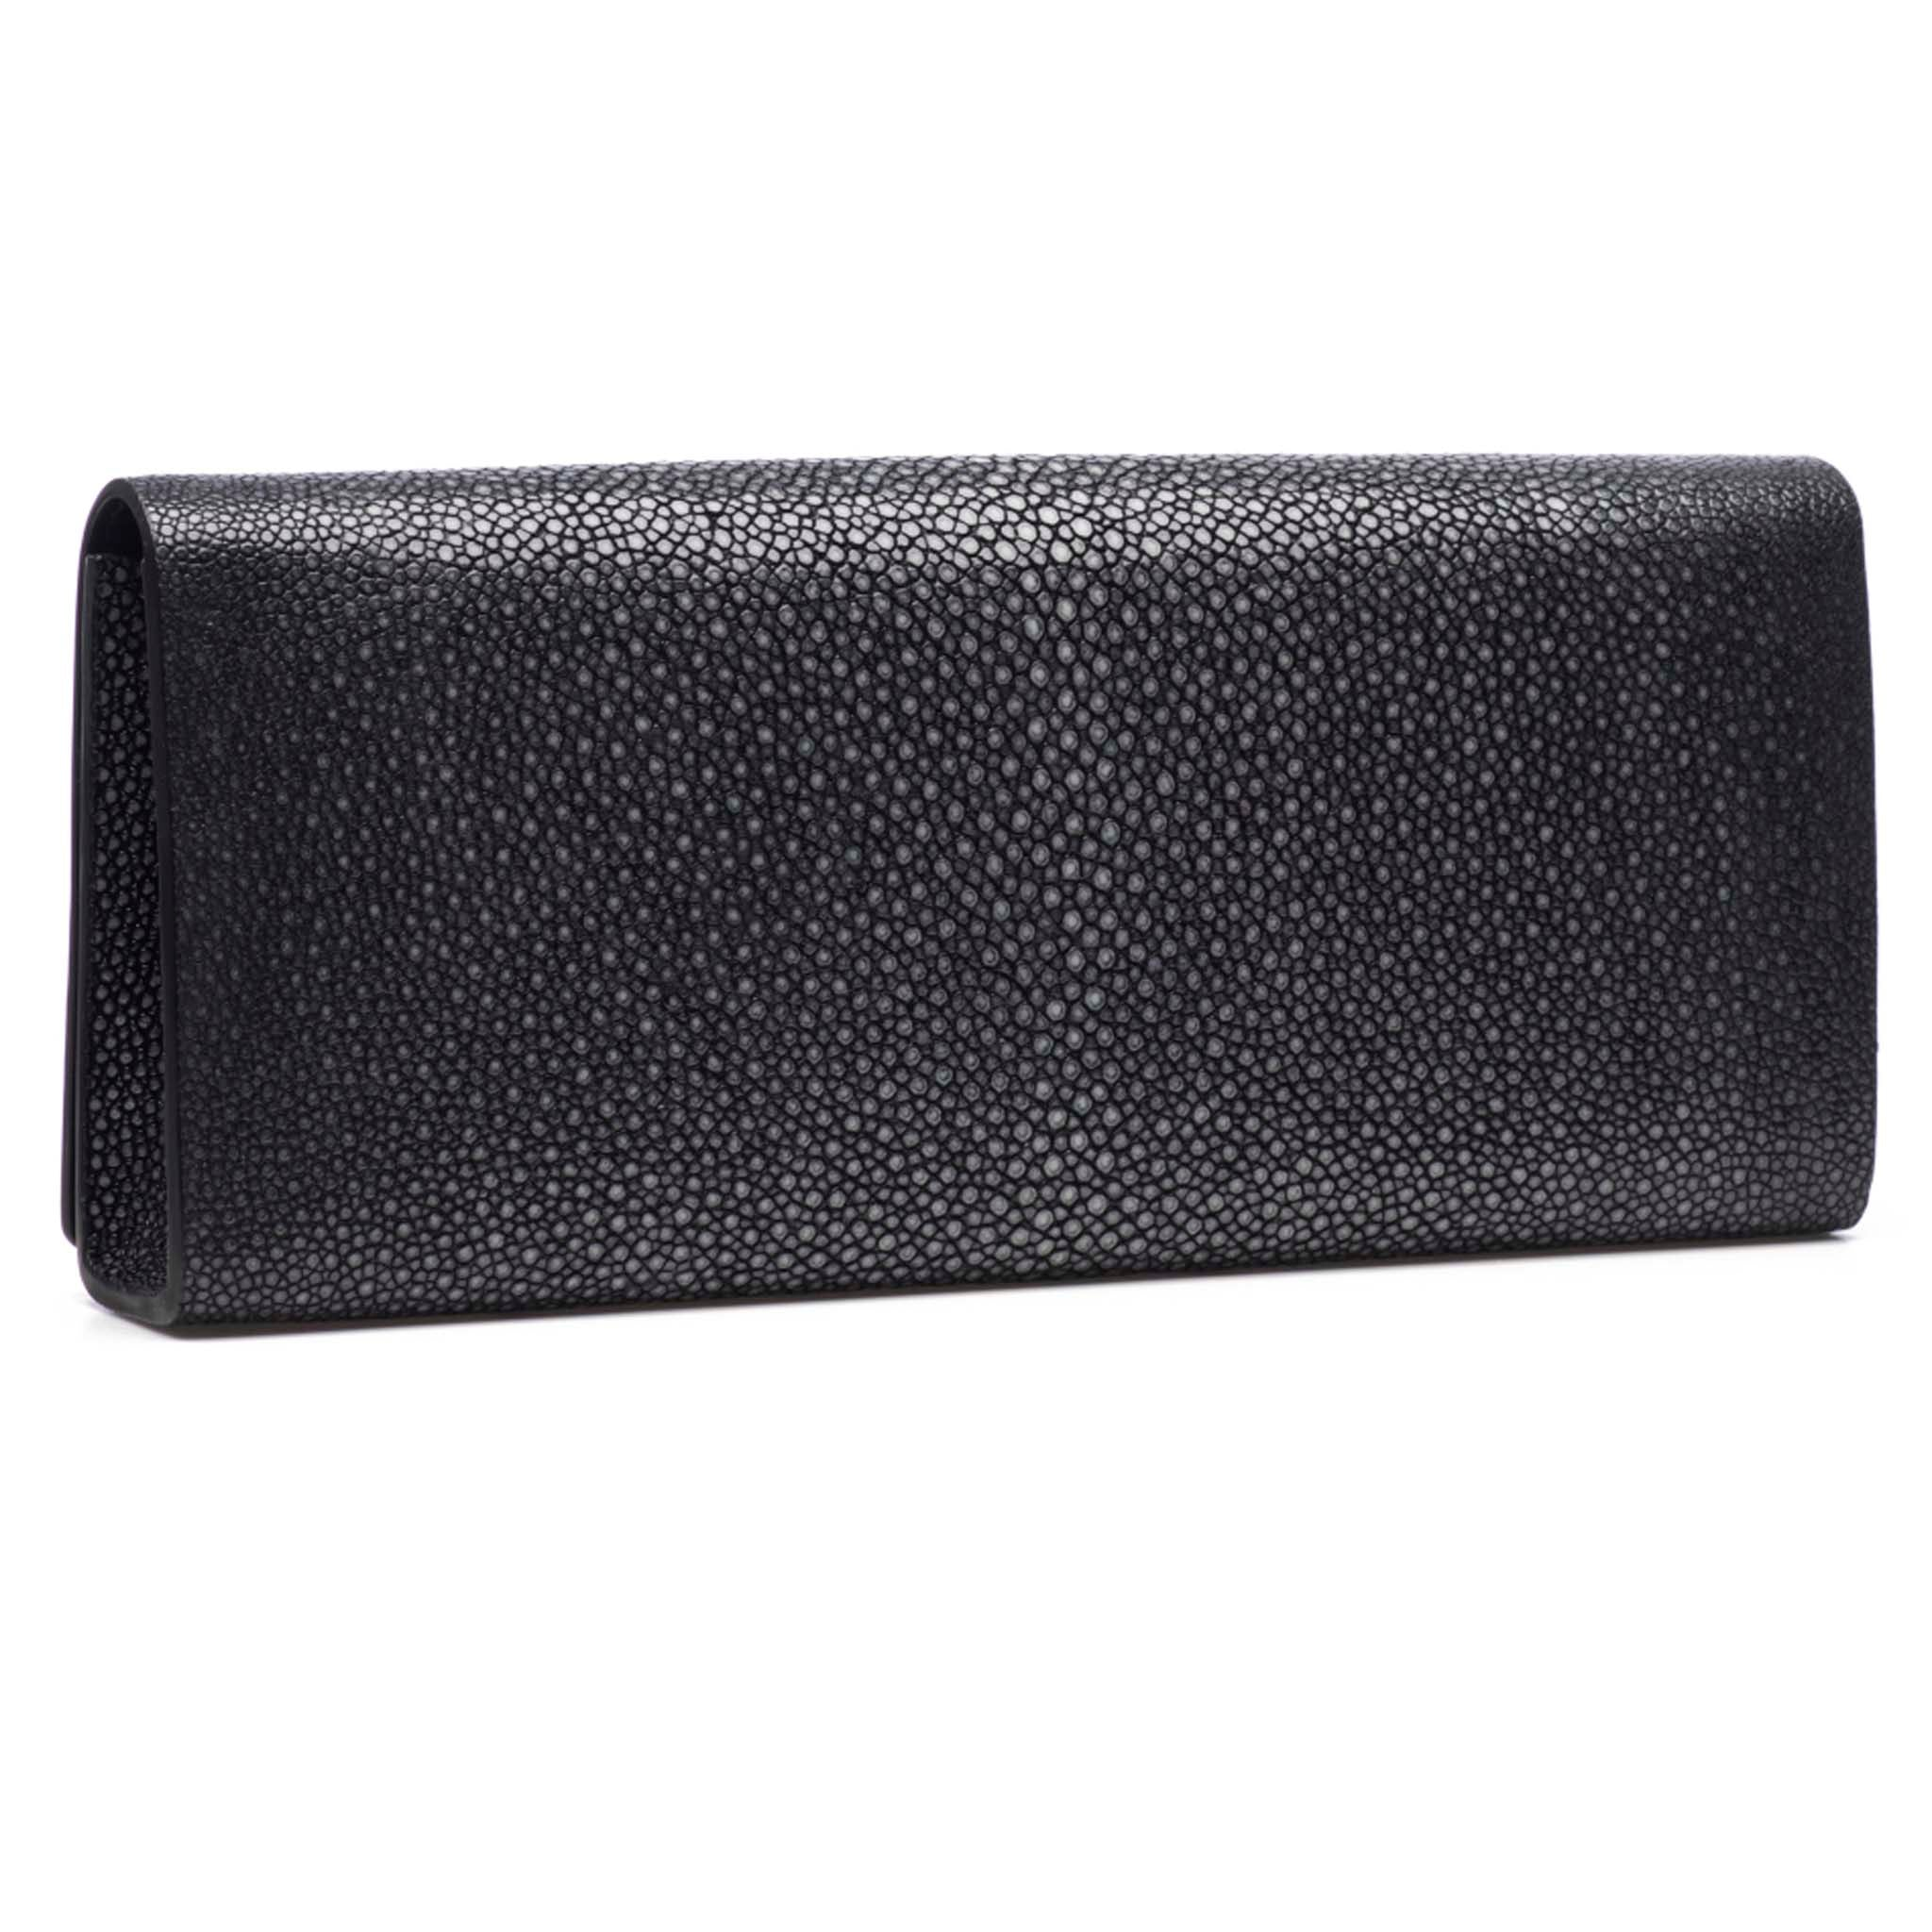 Black Shagreen Clutch Bag Back View Cleo - Vivo Direct